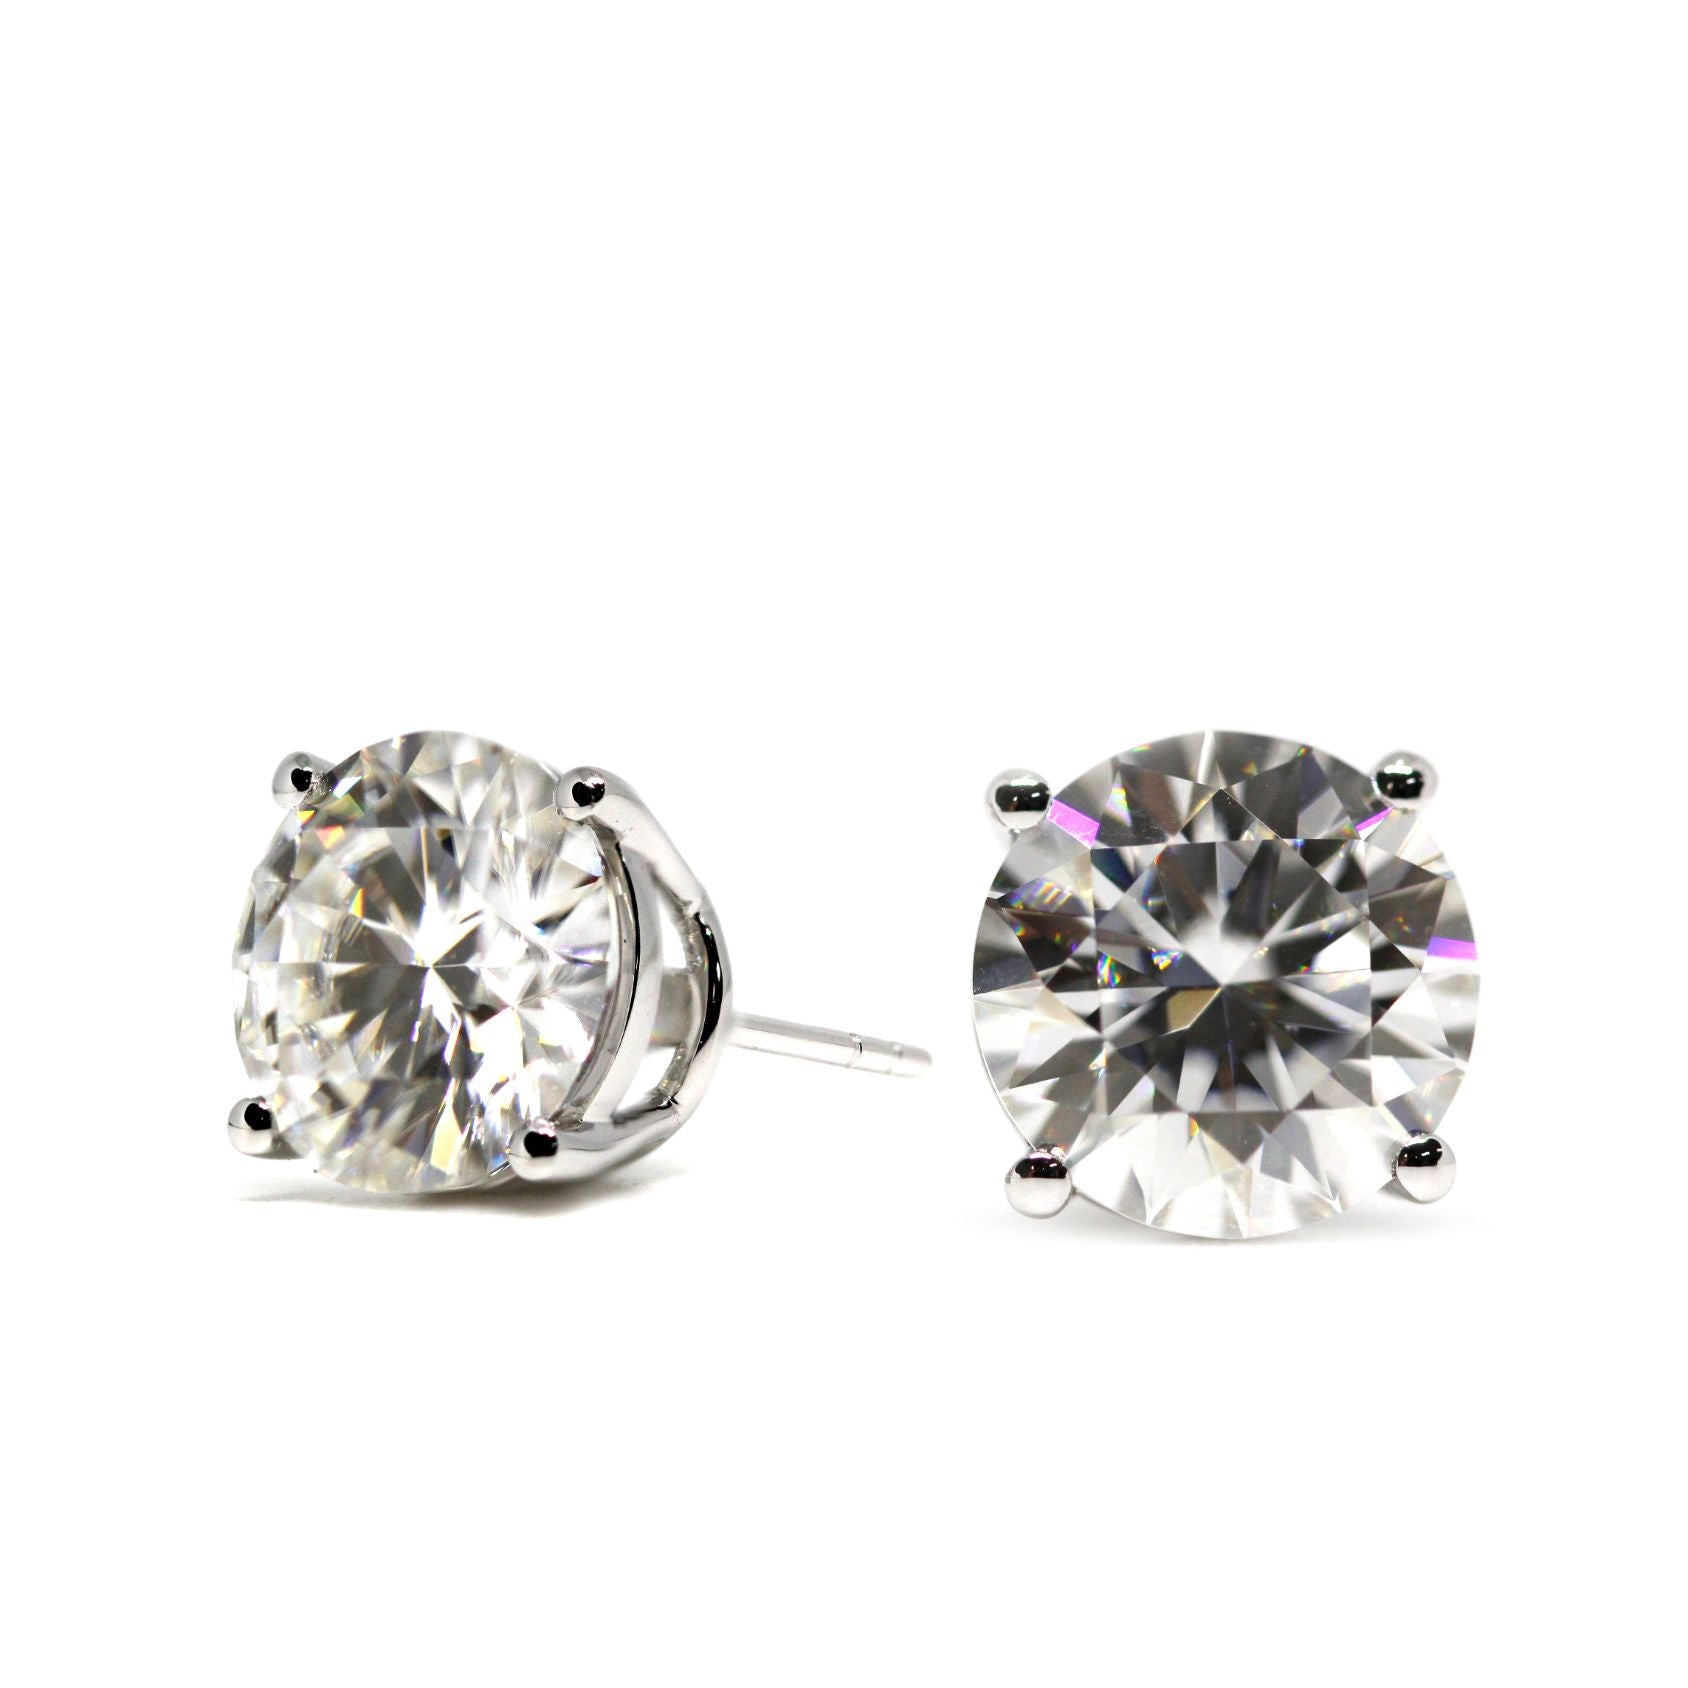 1 Carat Moissanite Solitaire Earrings in 18K White Gold Basket Setting - LeCaine Gems